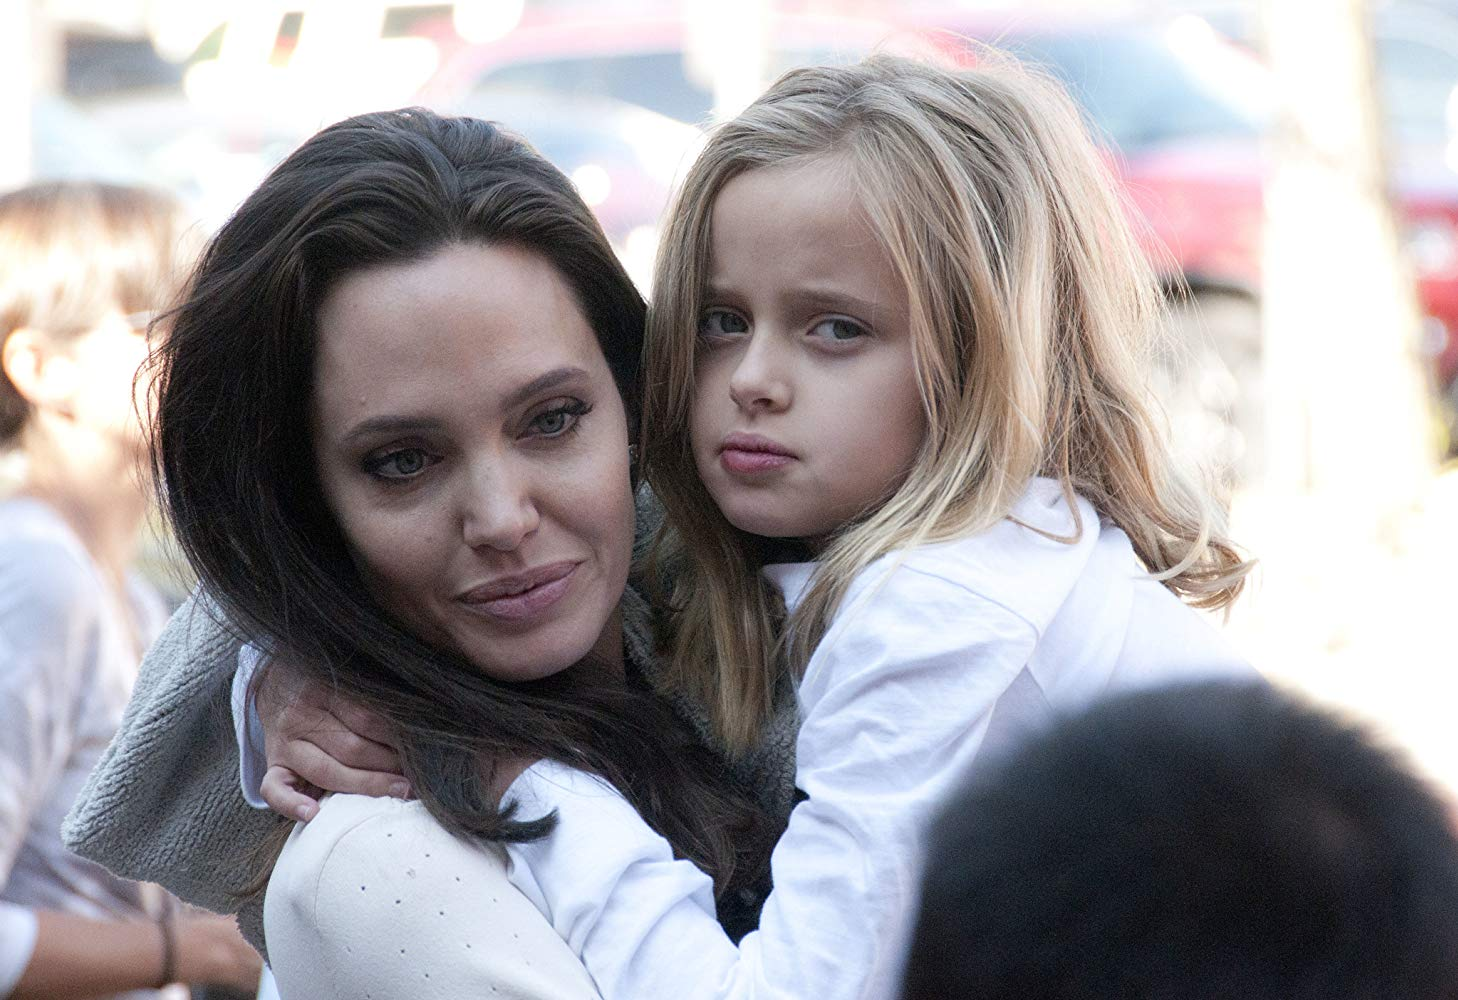 brad-pitt-it-reportedly-warms-his-heart-that-daughter-vivienne-resembles-angelina-jolie-so-much-heres-why